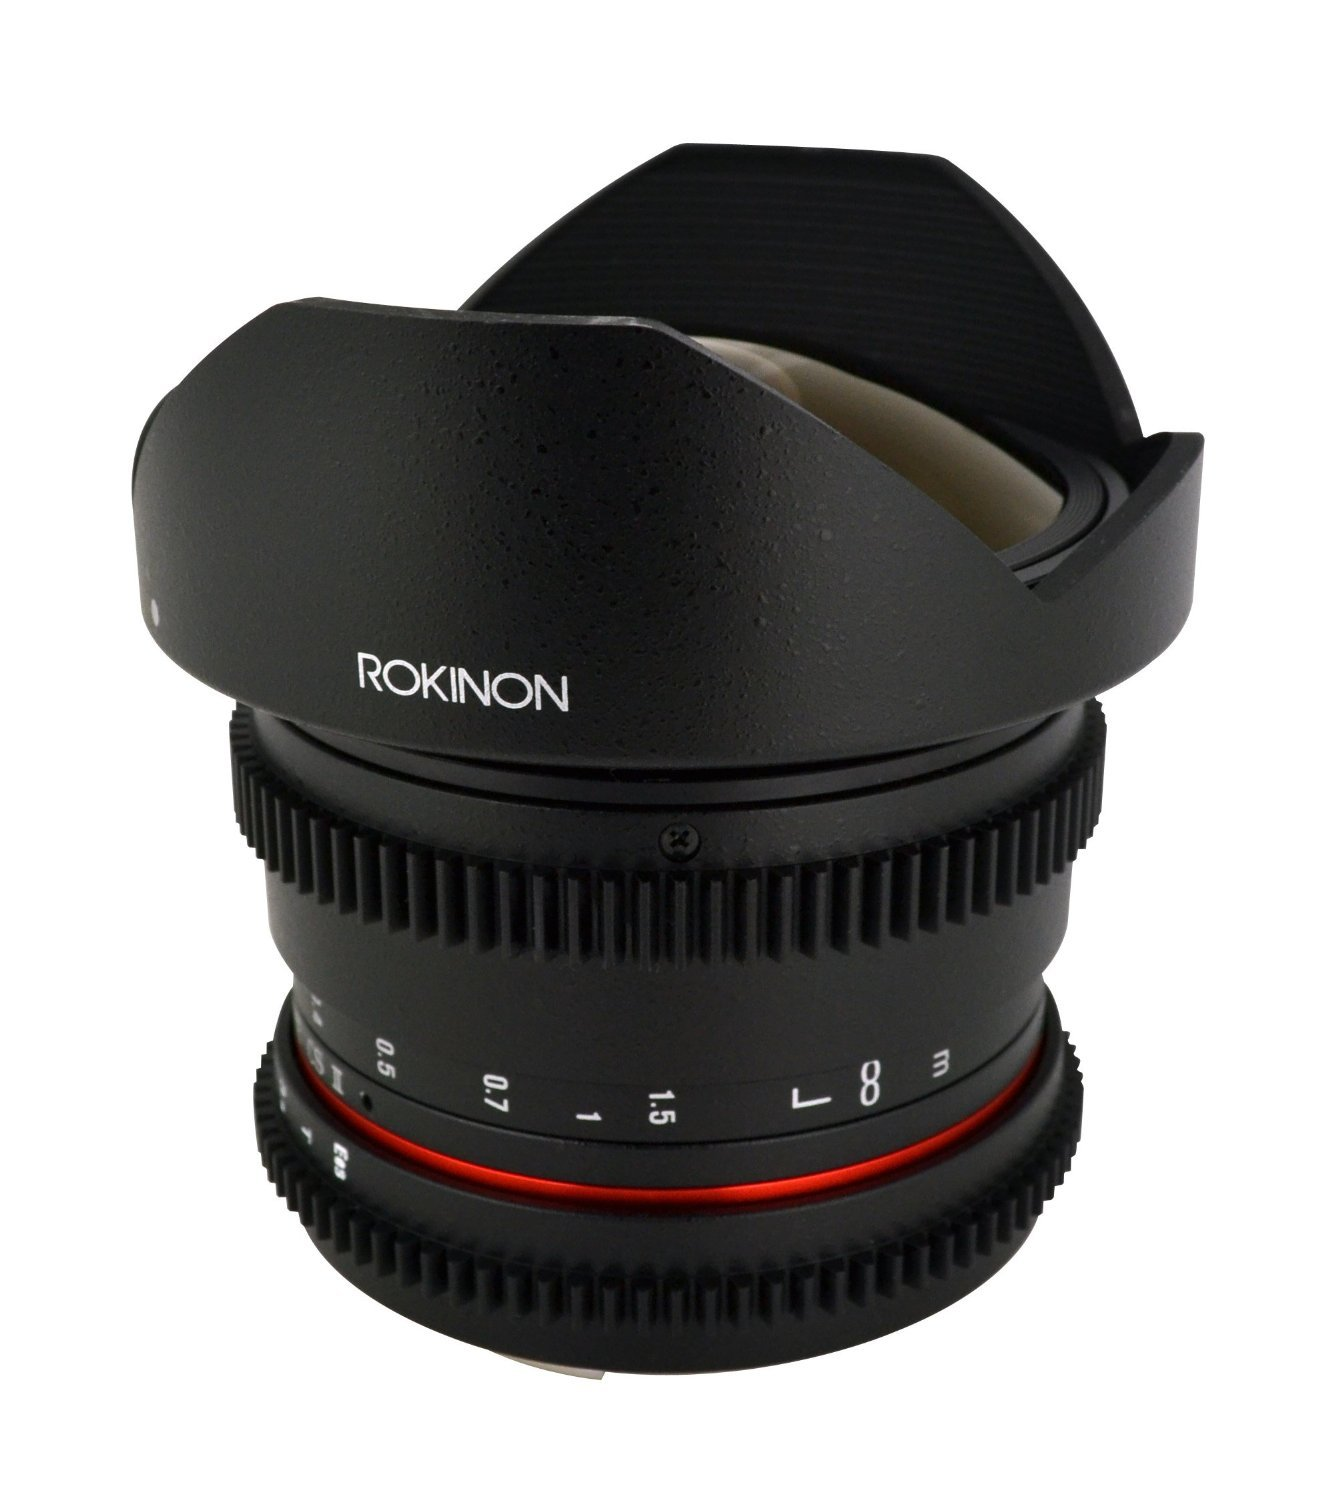 Rokinon RKHD8MV-C HD 8mm t/3.8 Fisheye Fixed Lens for Canon with De-clicked Aperture and Removable HoodWide-Angle Lens [並行輸入品]   B019SZG880